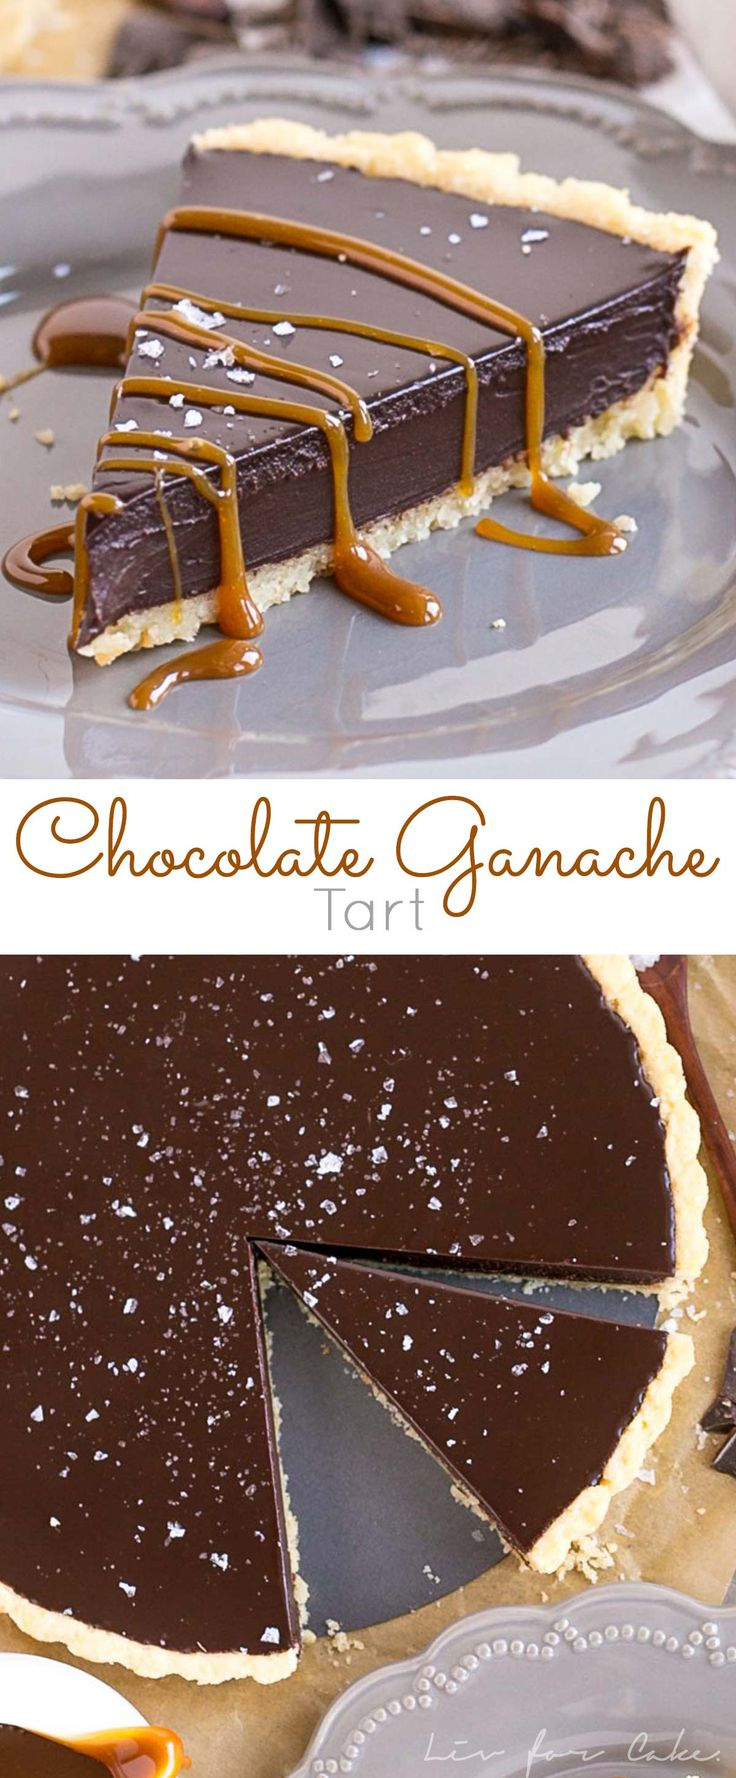 This simple and elegant Dark Chocolate Ganache Tart can be topped with anything you like, from a sprinkling of sea salt to dulce